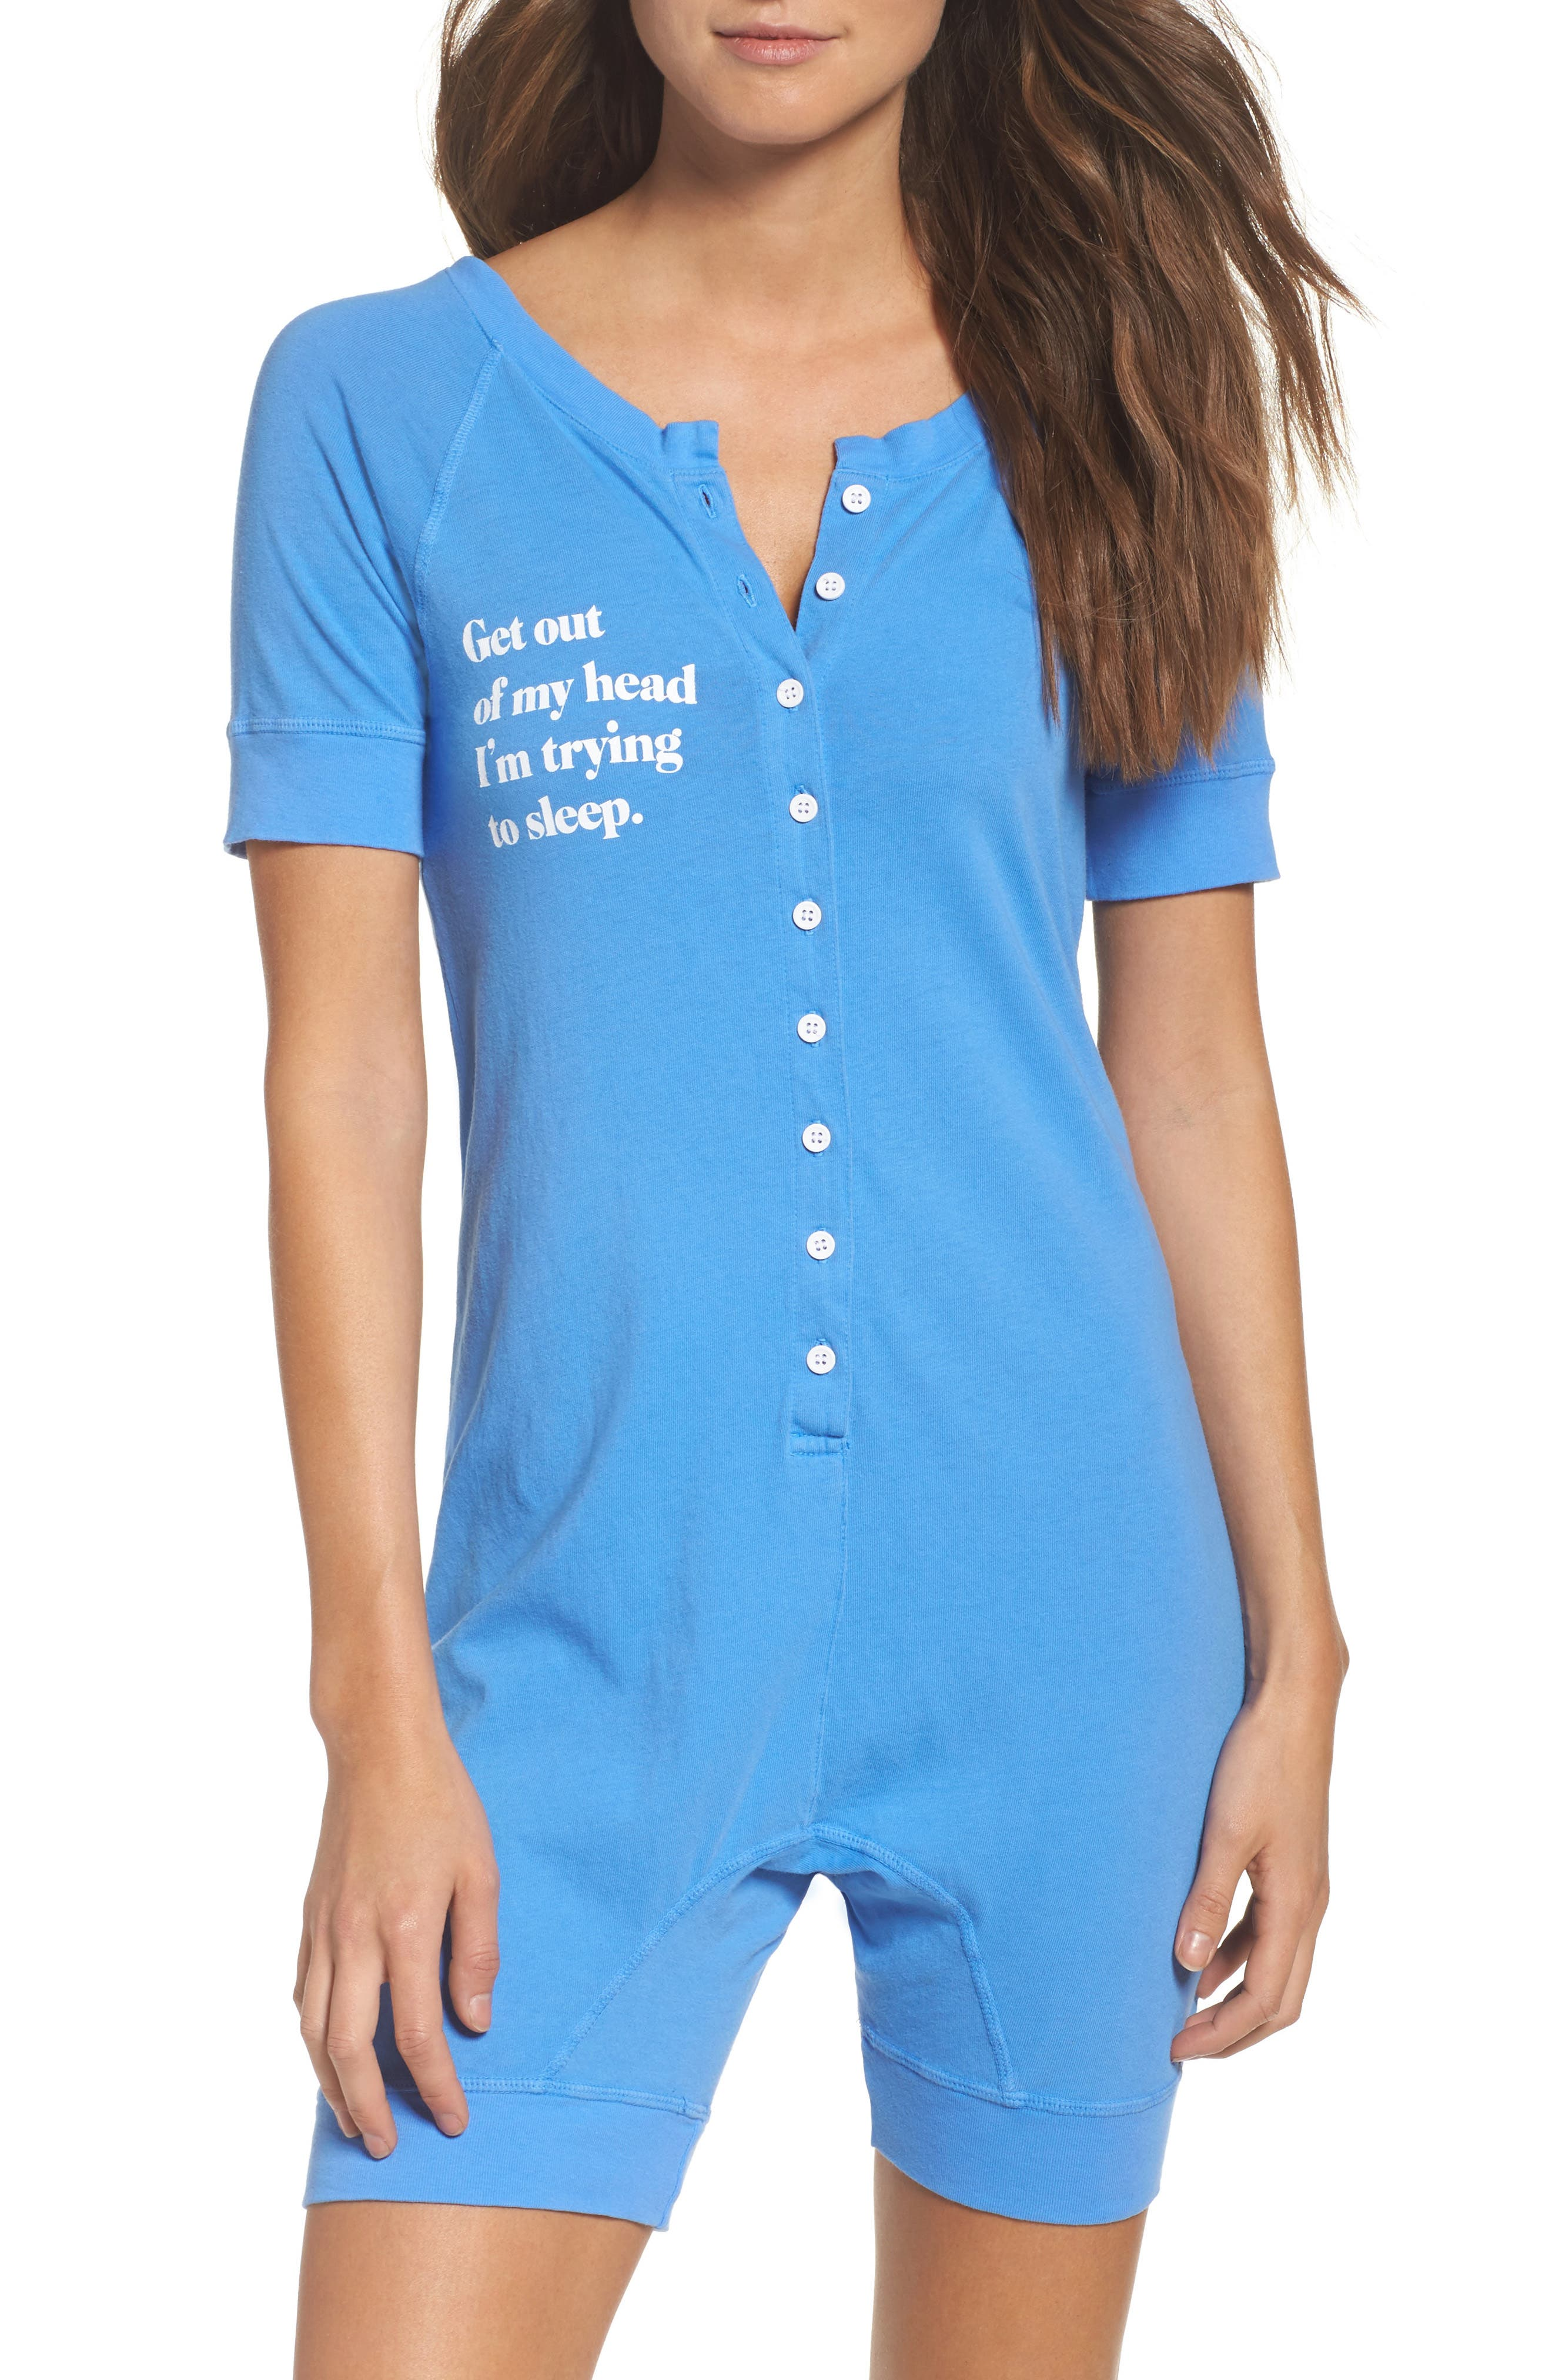 Daydream Nation Get Out of My Head Union Lounge Romper